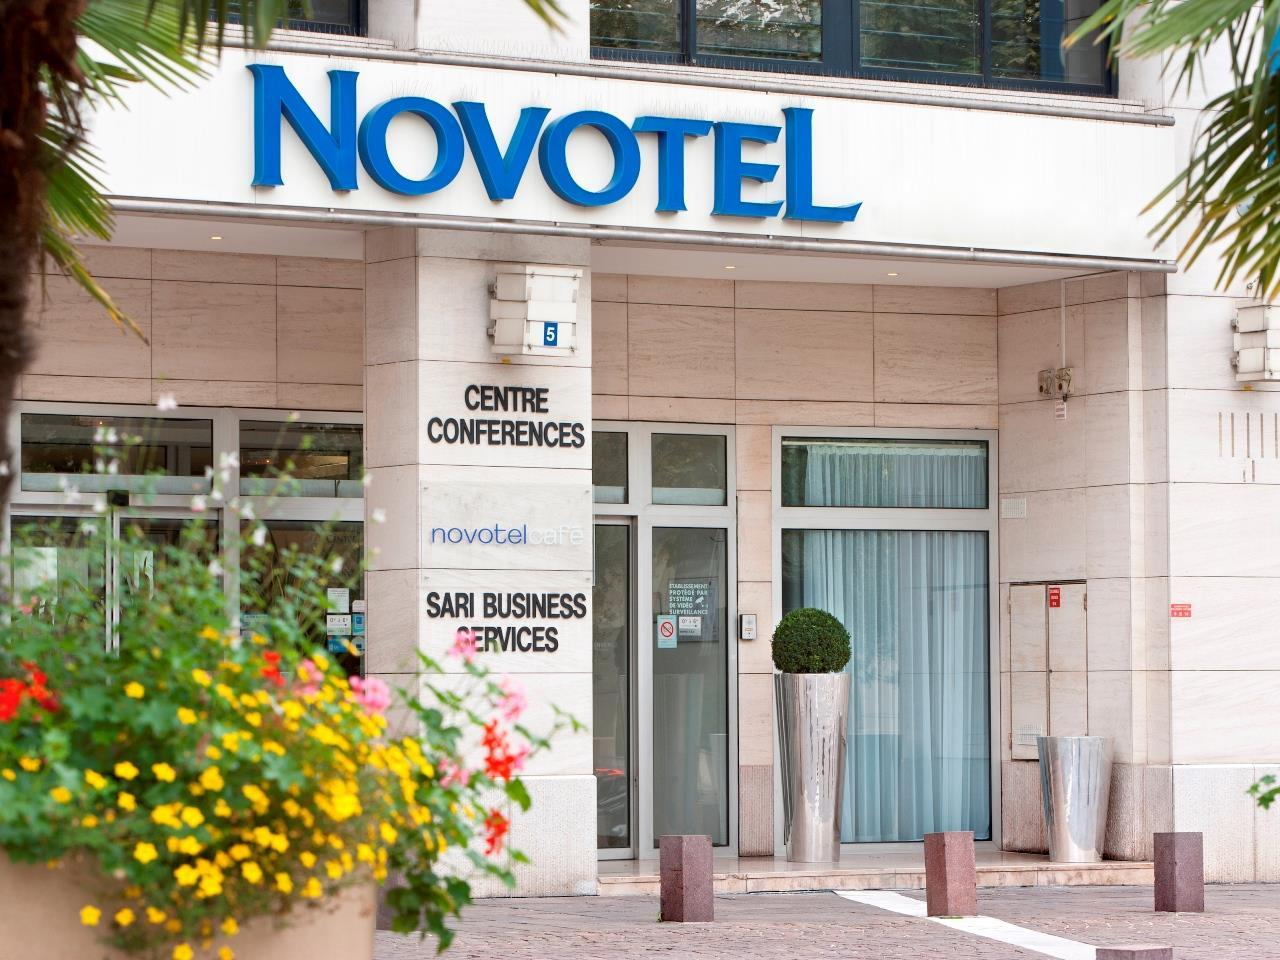 Novotel Paris Sud Porte de Charenton Hotel in France   Room Deals     More about Novotel Paris Sud Porte de Charenton Hotel